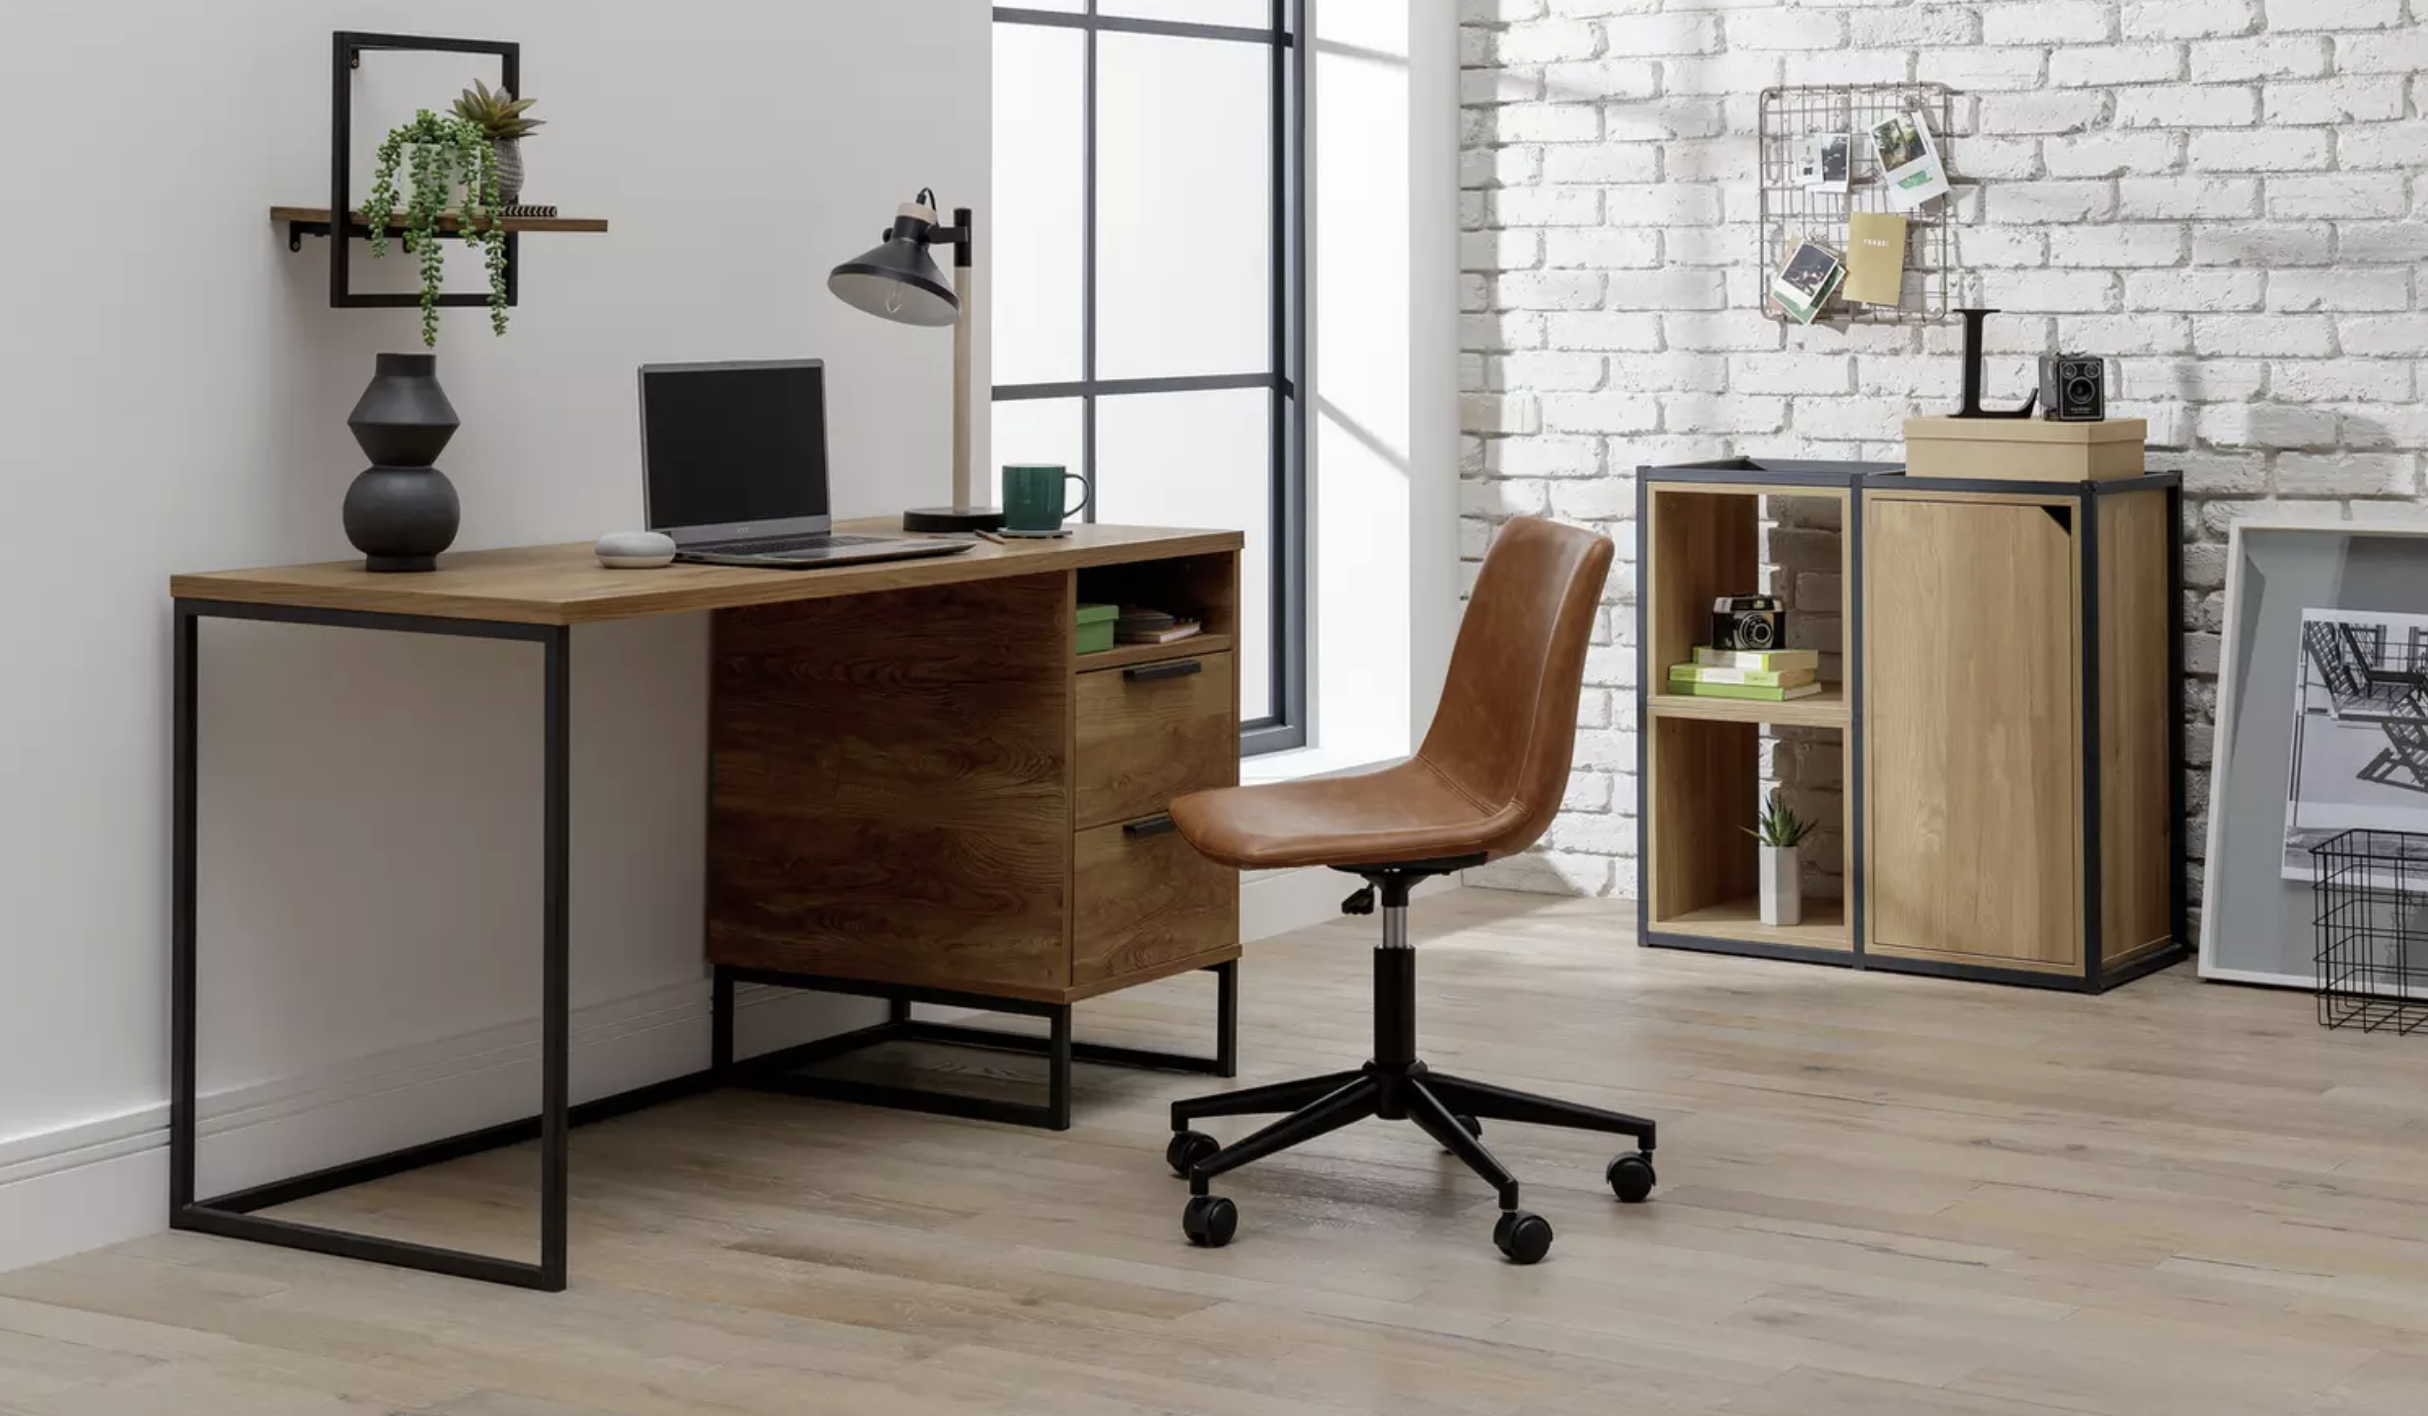 This Argos Office Furniture Is Here To Make Wfh A Lot More Stylish And Comfy Real Homes